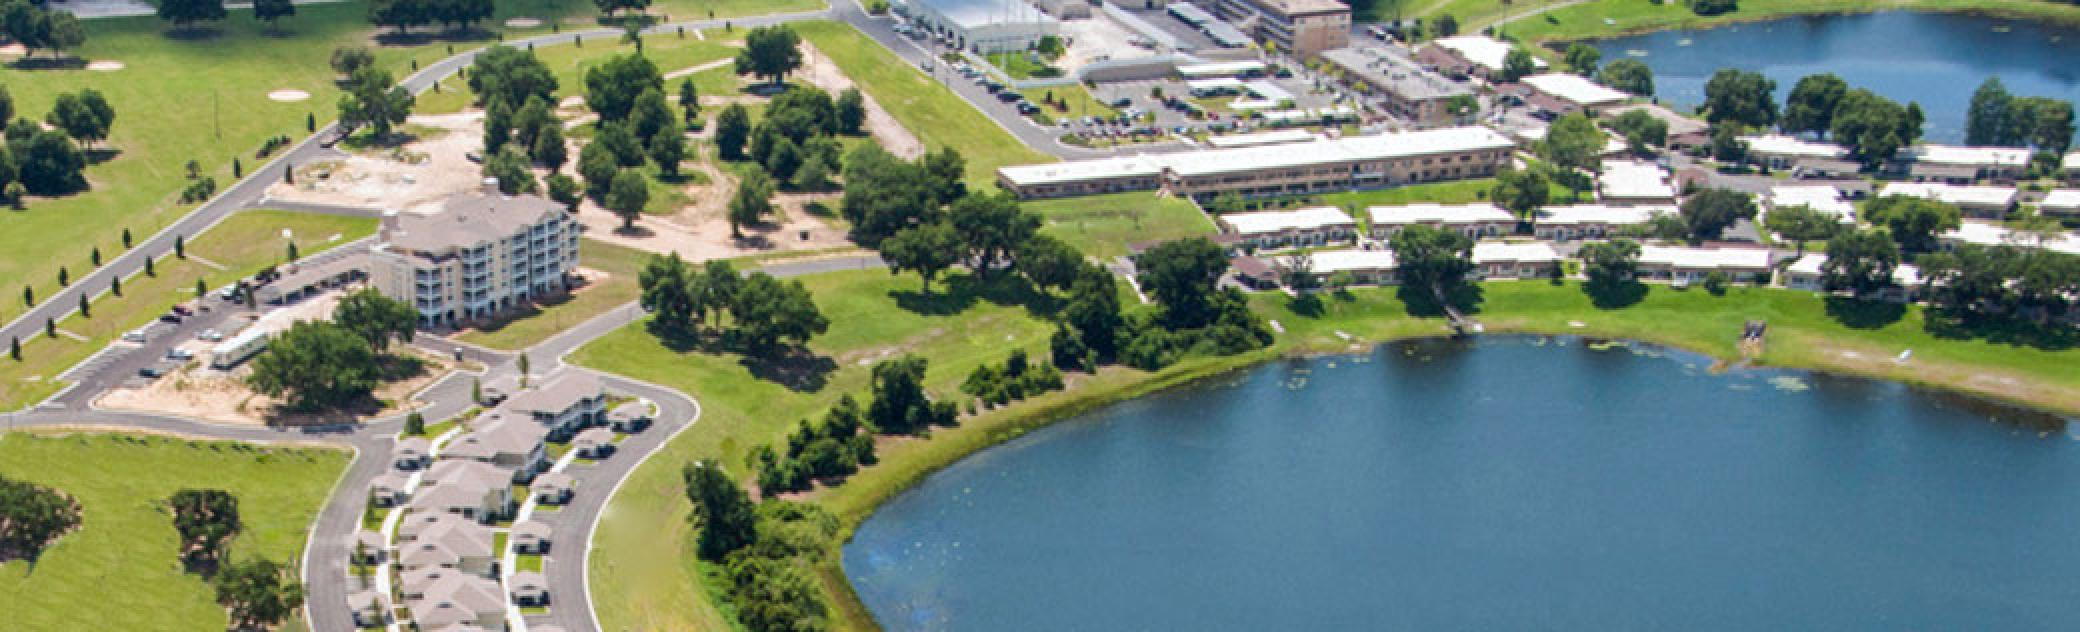 Lakeview Terrace Aerial View